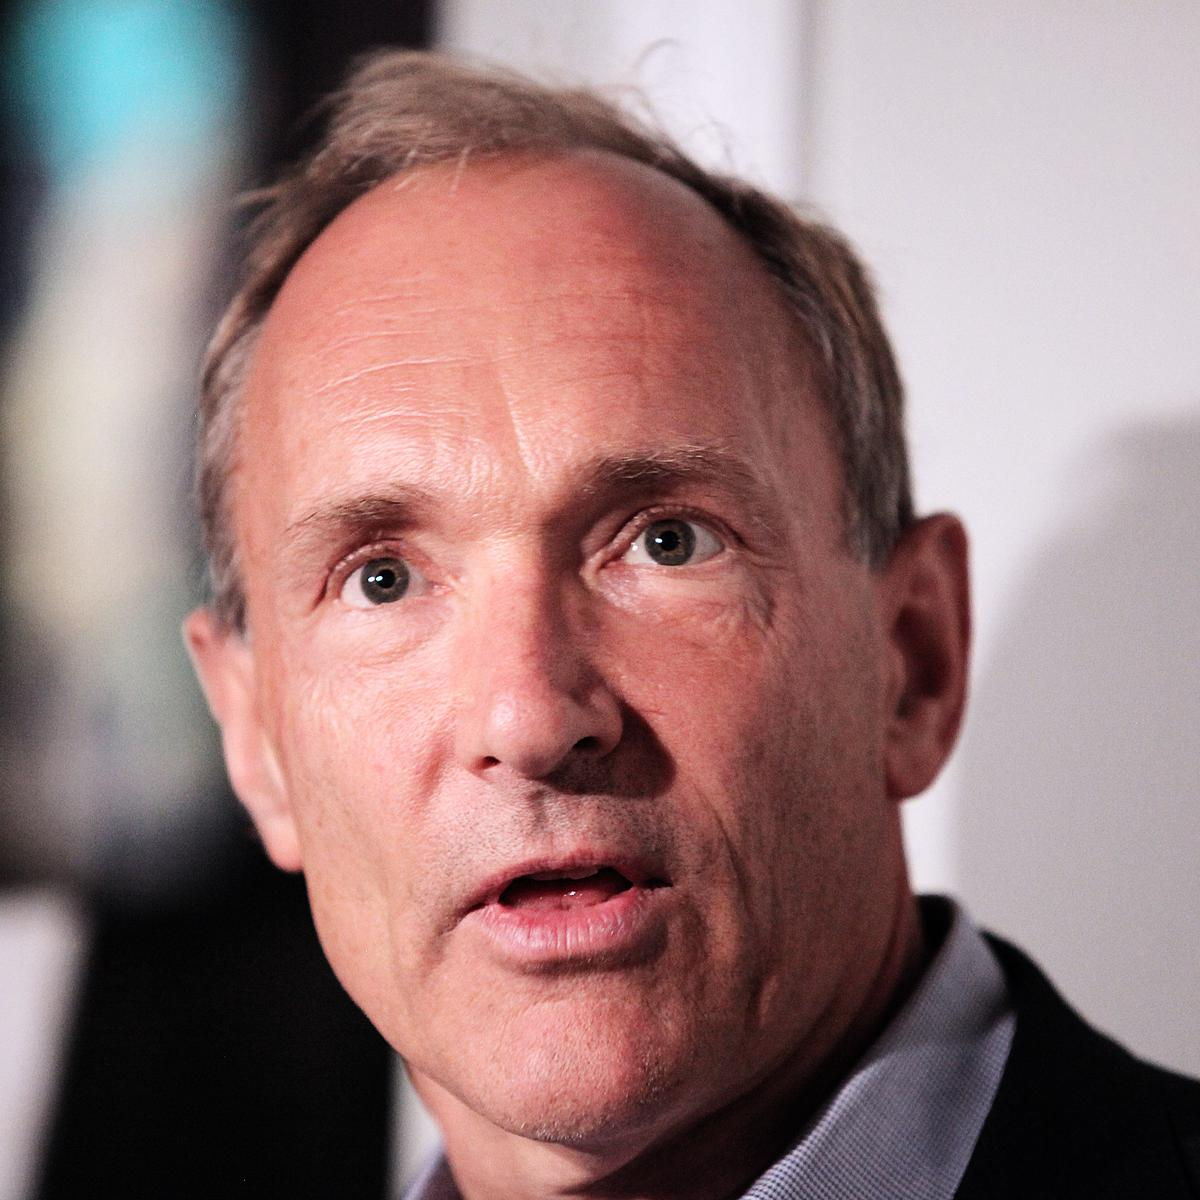 Photograph of Sir Tim Berners-Lee for client Sapient Nitro by professional photographer Julian Hanford